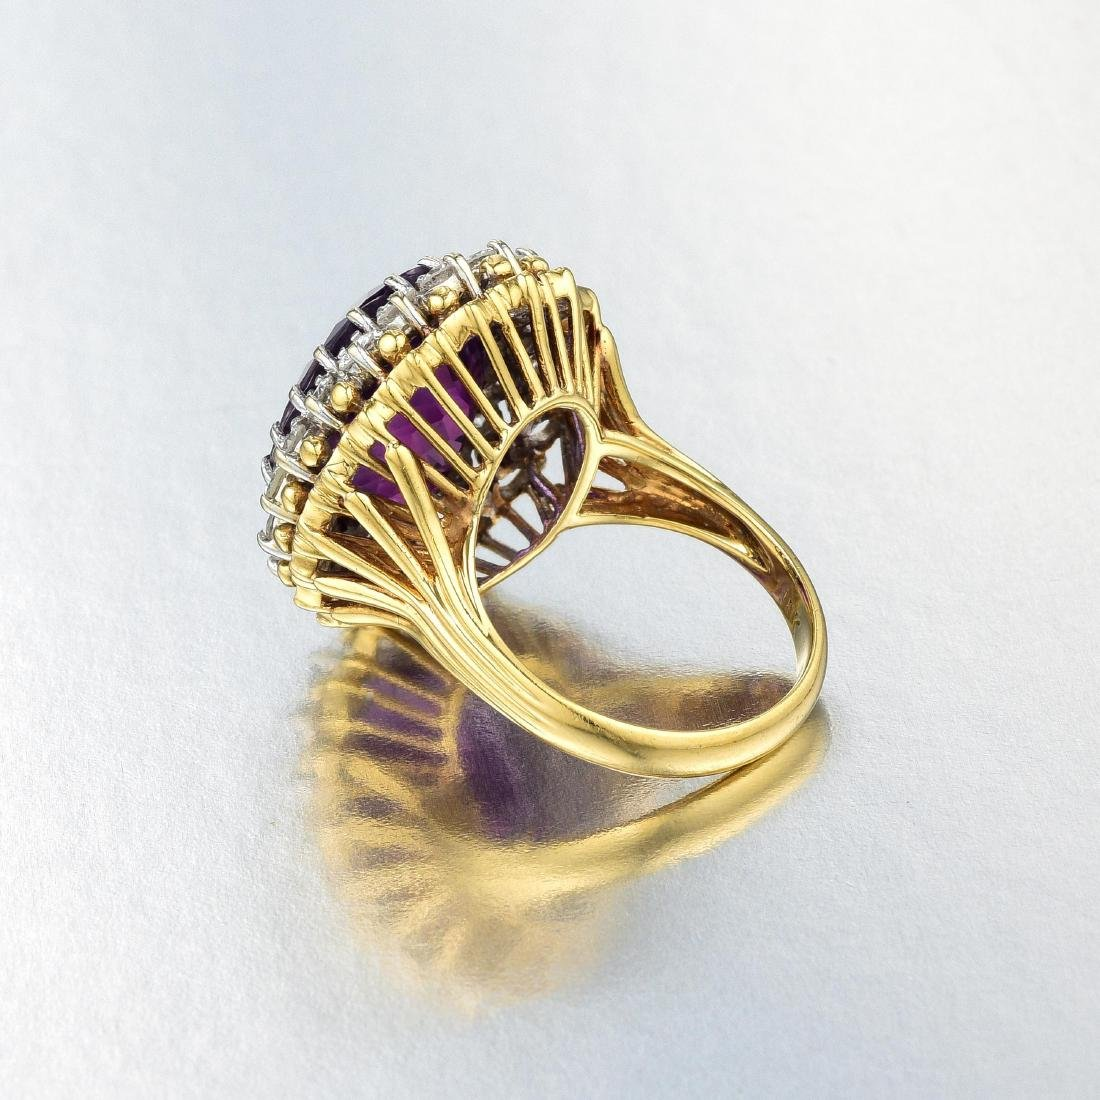 An 18K Gold Amethyst and Diamond Ring - 3